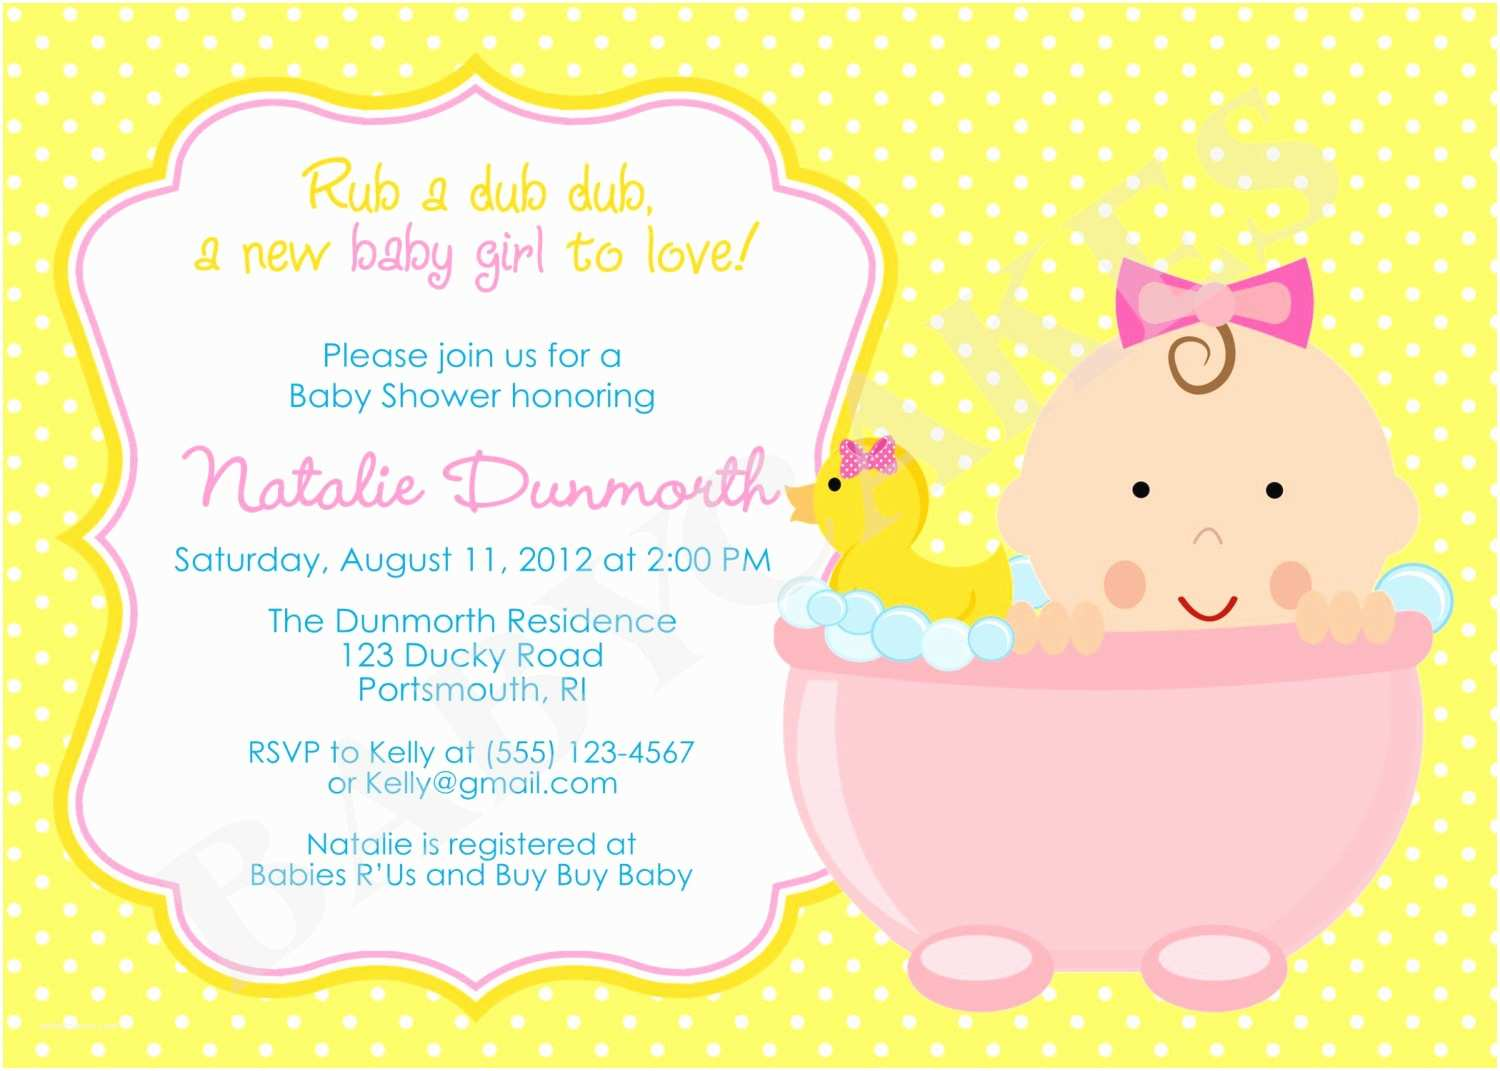 Rubber Duck Baby Shower Invitations How to Plan Rubber Ducky Baby Shower Ideas